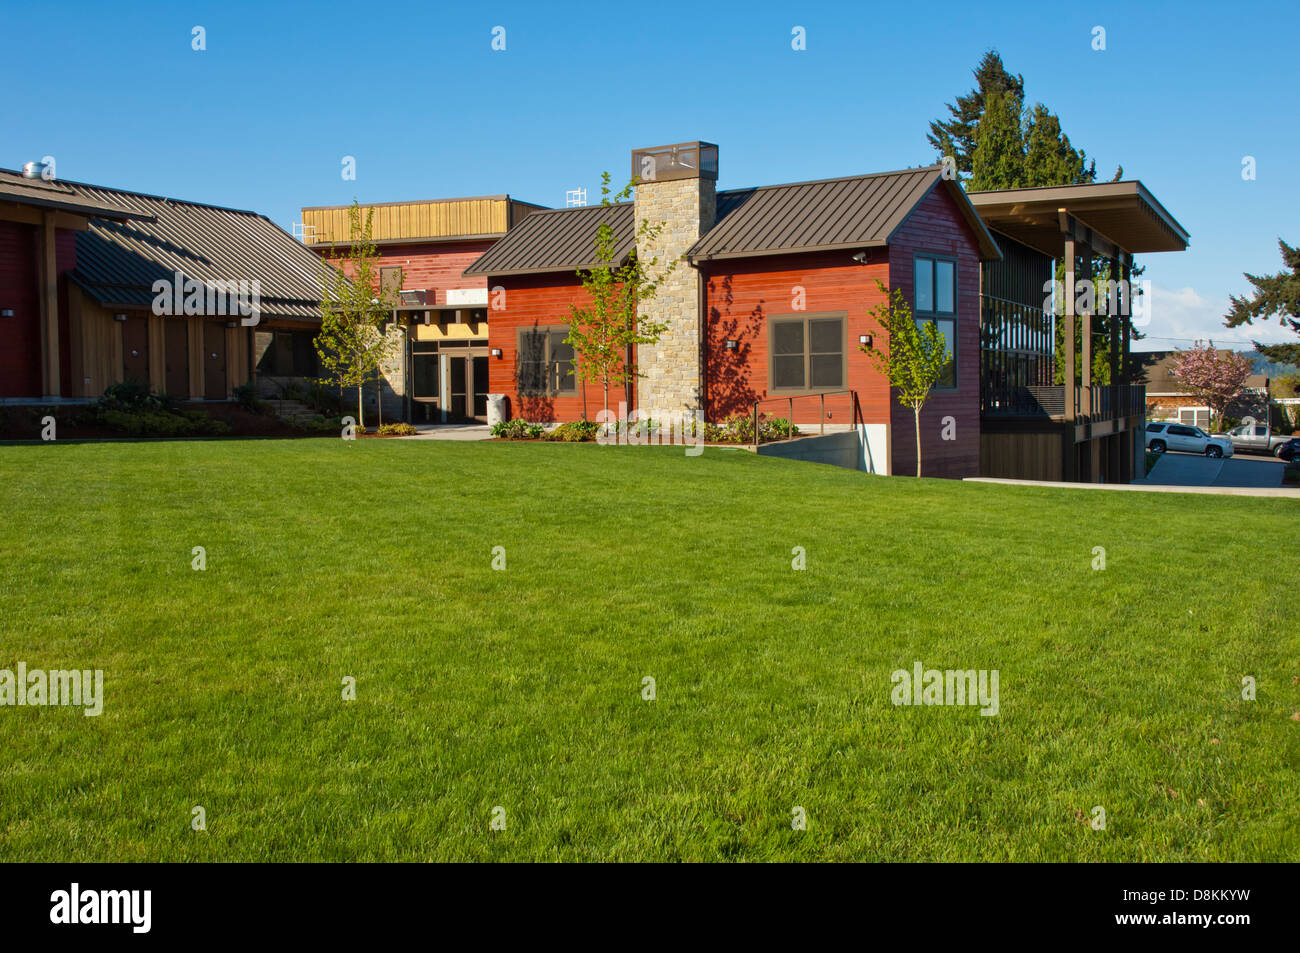 Rosehill Community Center, Mukilteo, Washington, USA - Stock Image